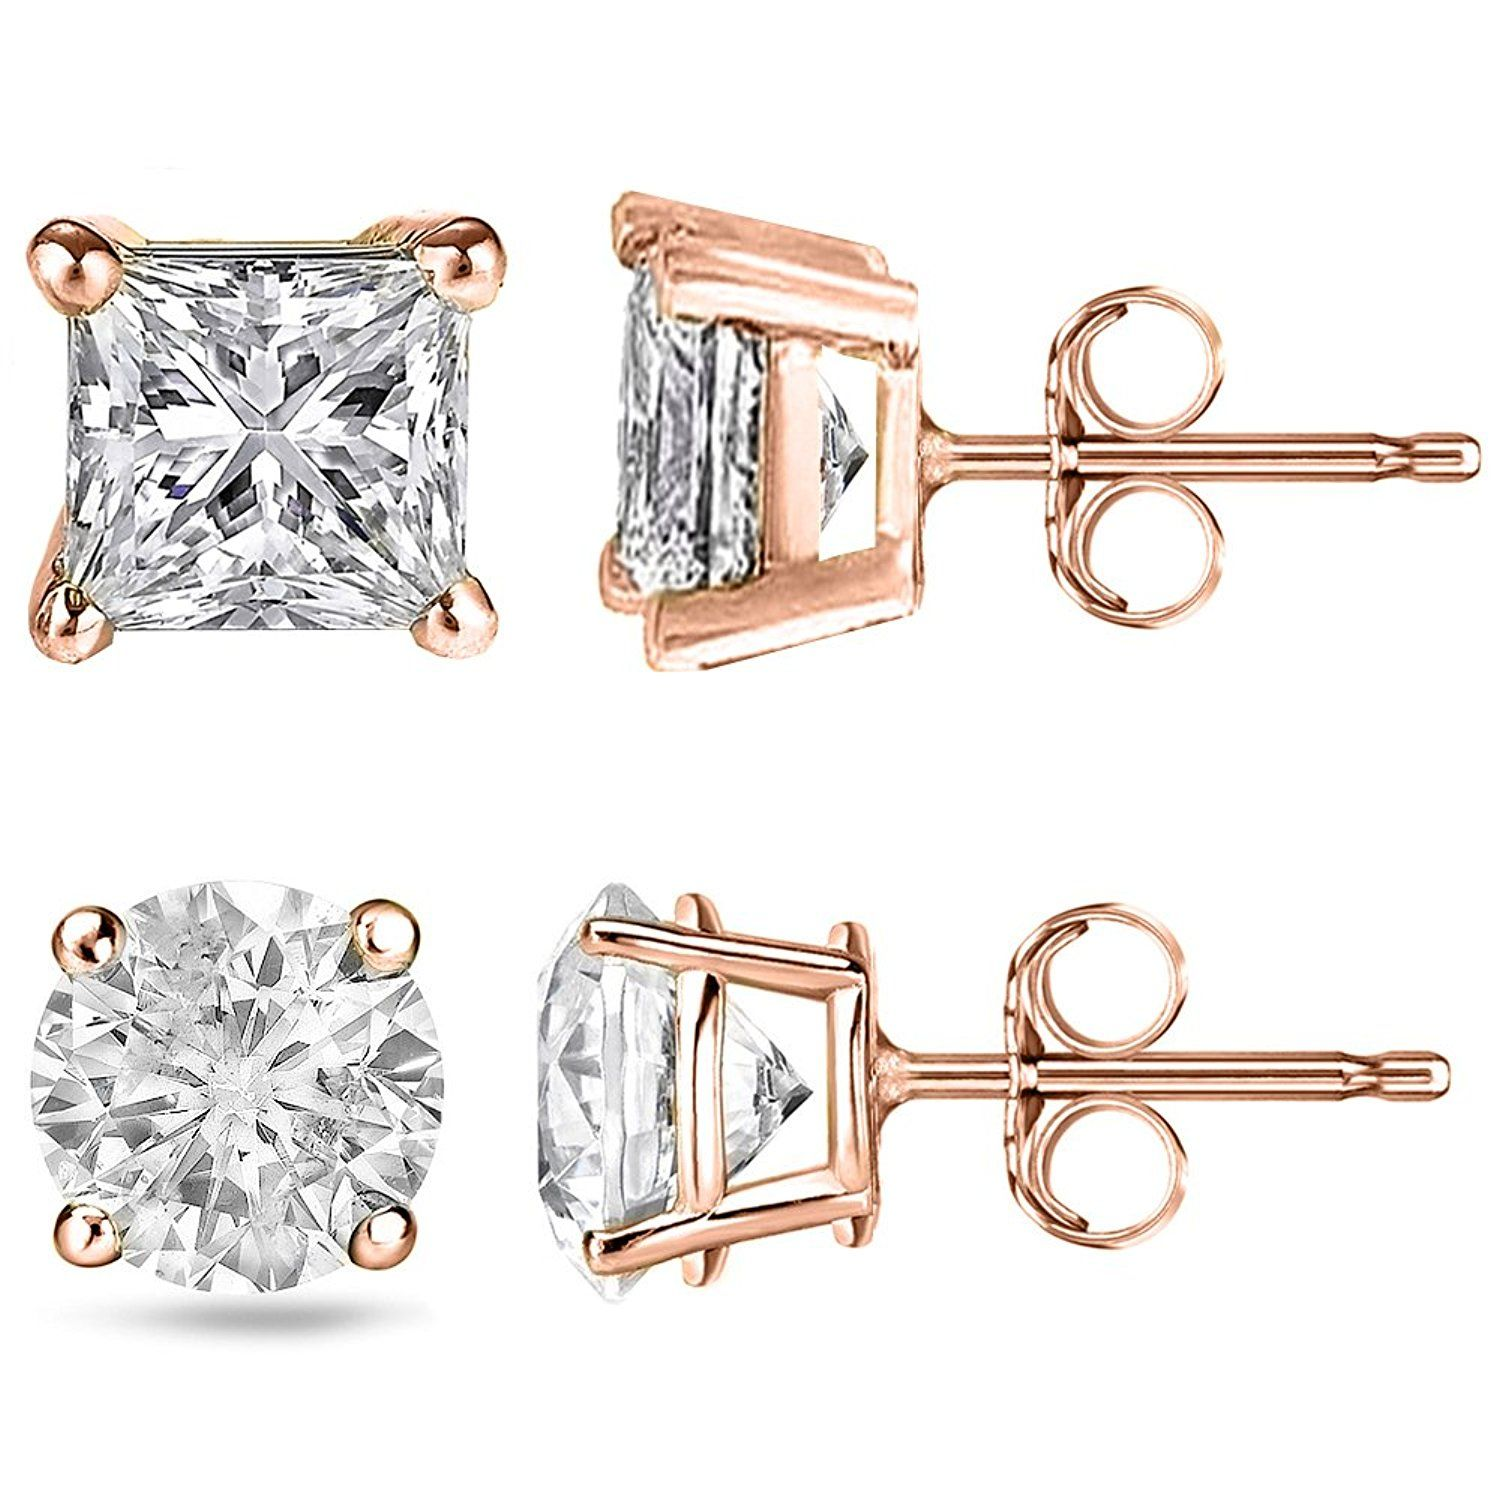 * Penny Deals * - FANTOM Round and Princess 2 Pairs of Cz Earrings 2.00 Carat Total Weight Sterling Silver Rose Overlay >>> Check this awesome product by going to the link at the image.